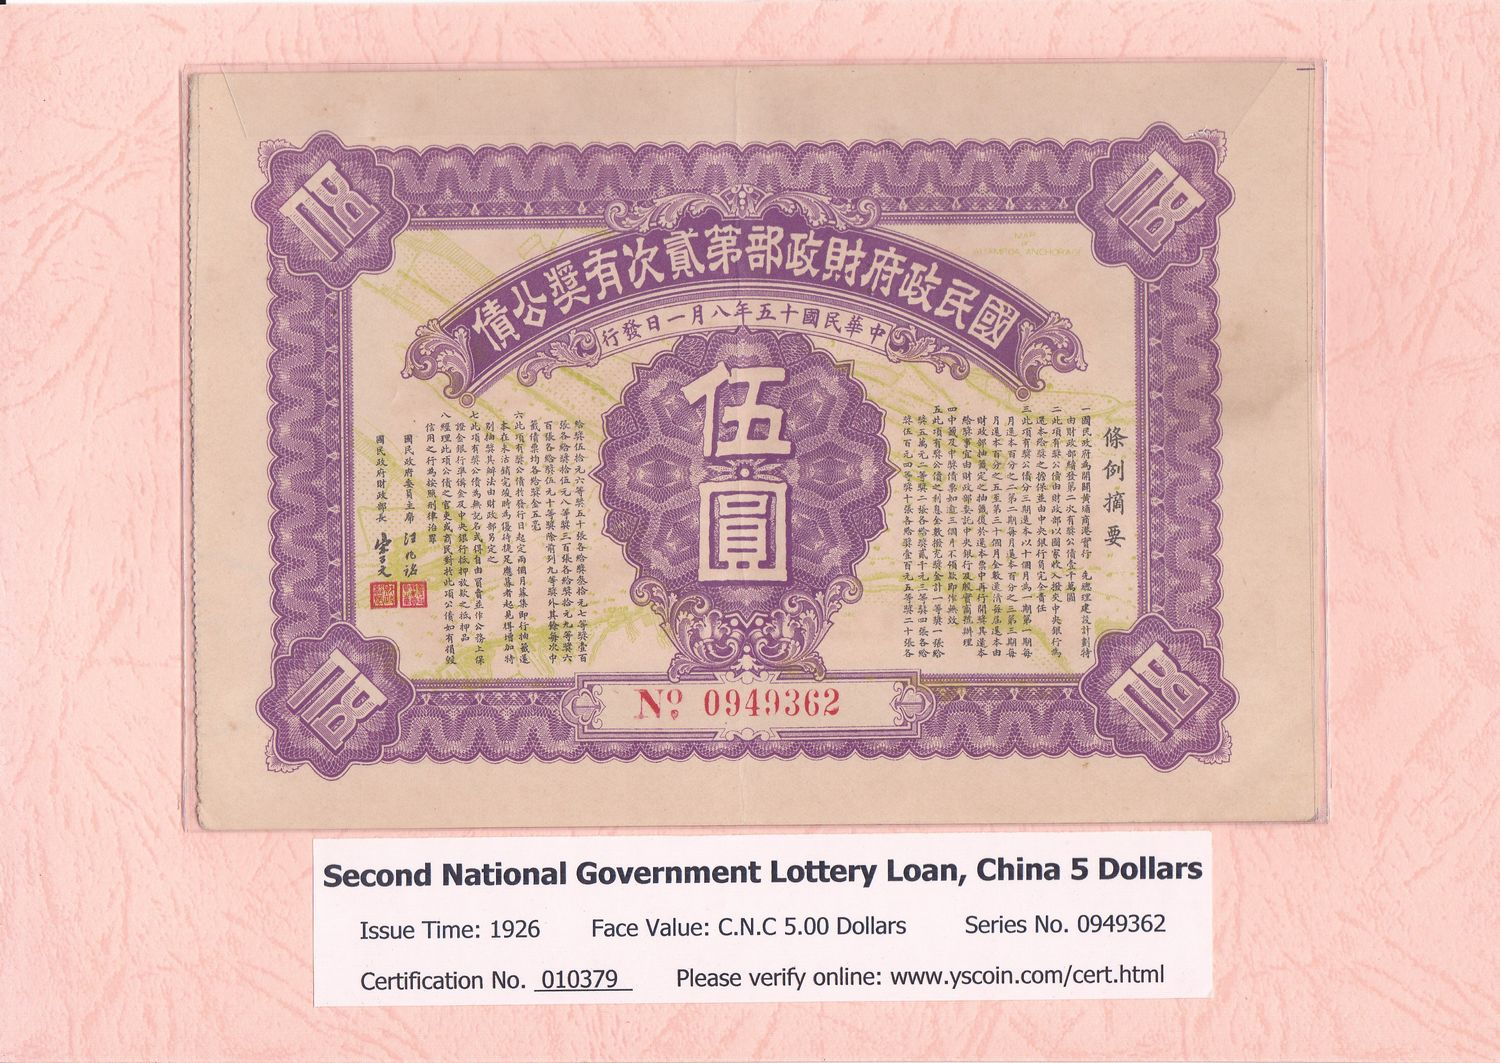 010379, Second National Government Lottery Loan, China 5 Dollars